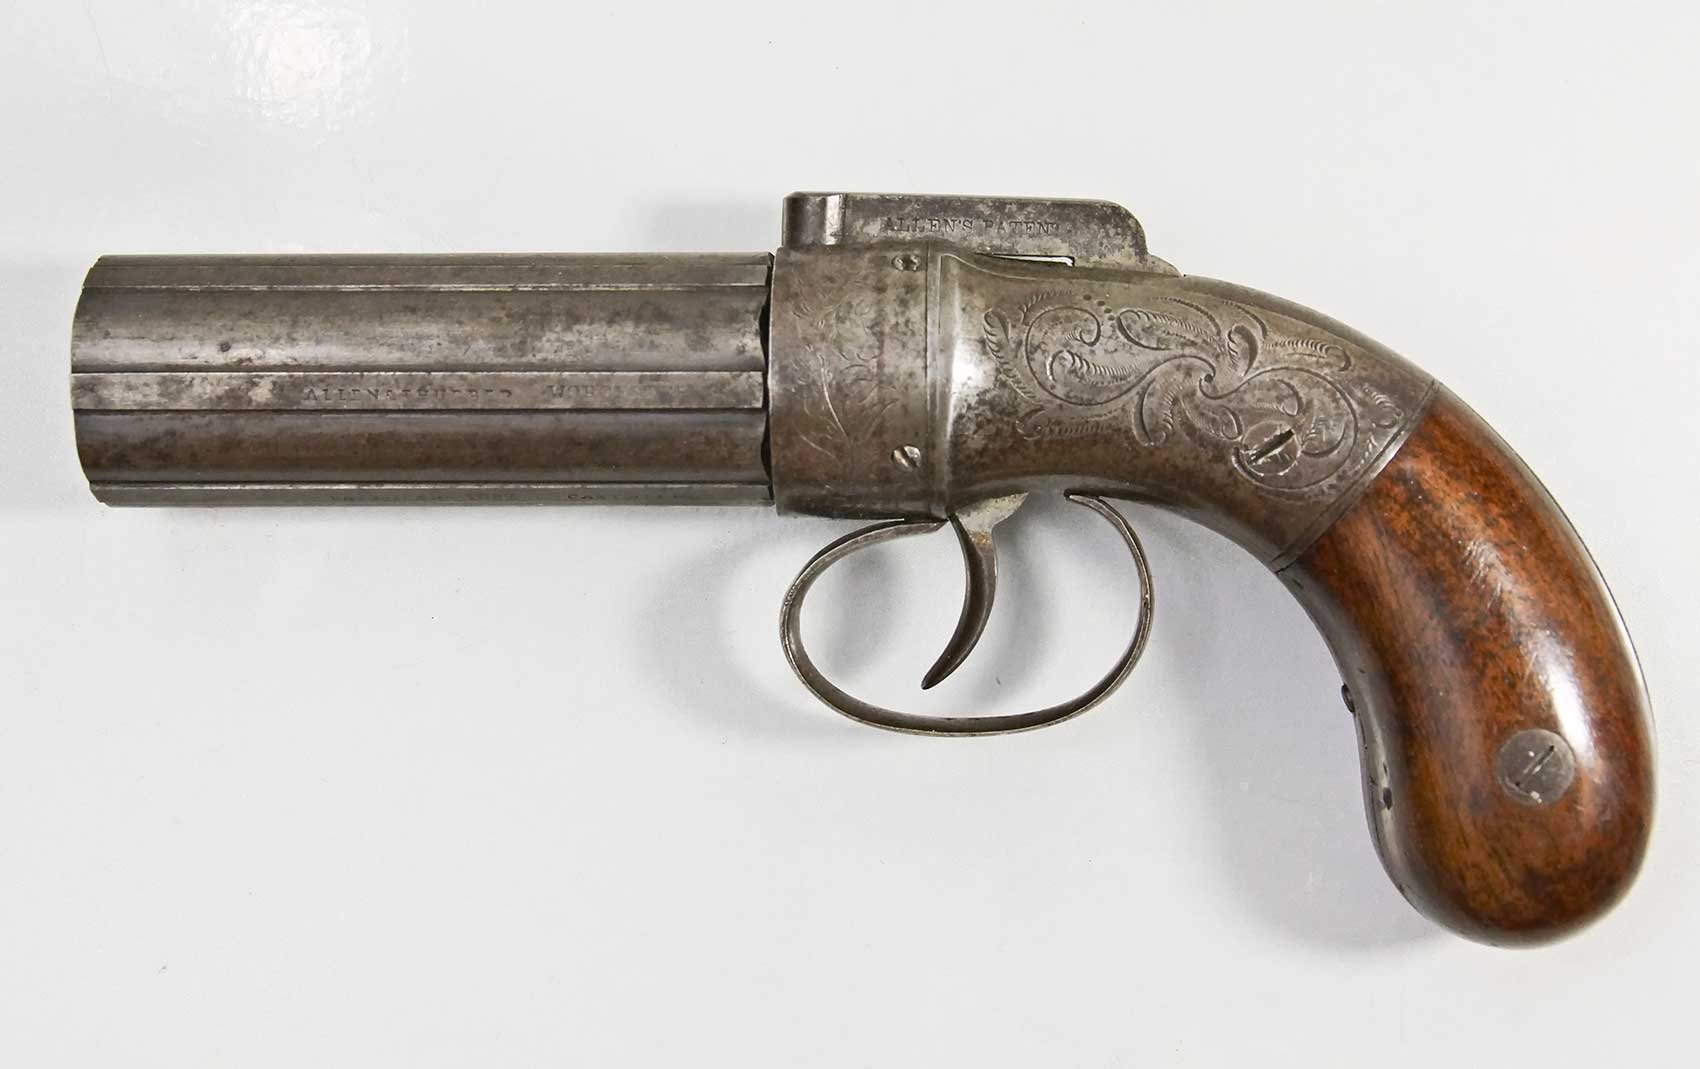 Allen and Thurber Pepperbox Pistol